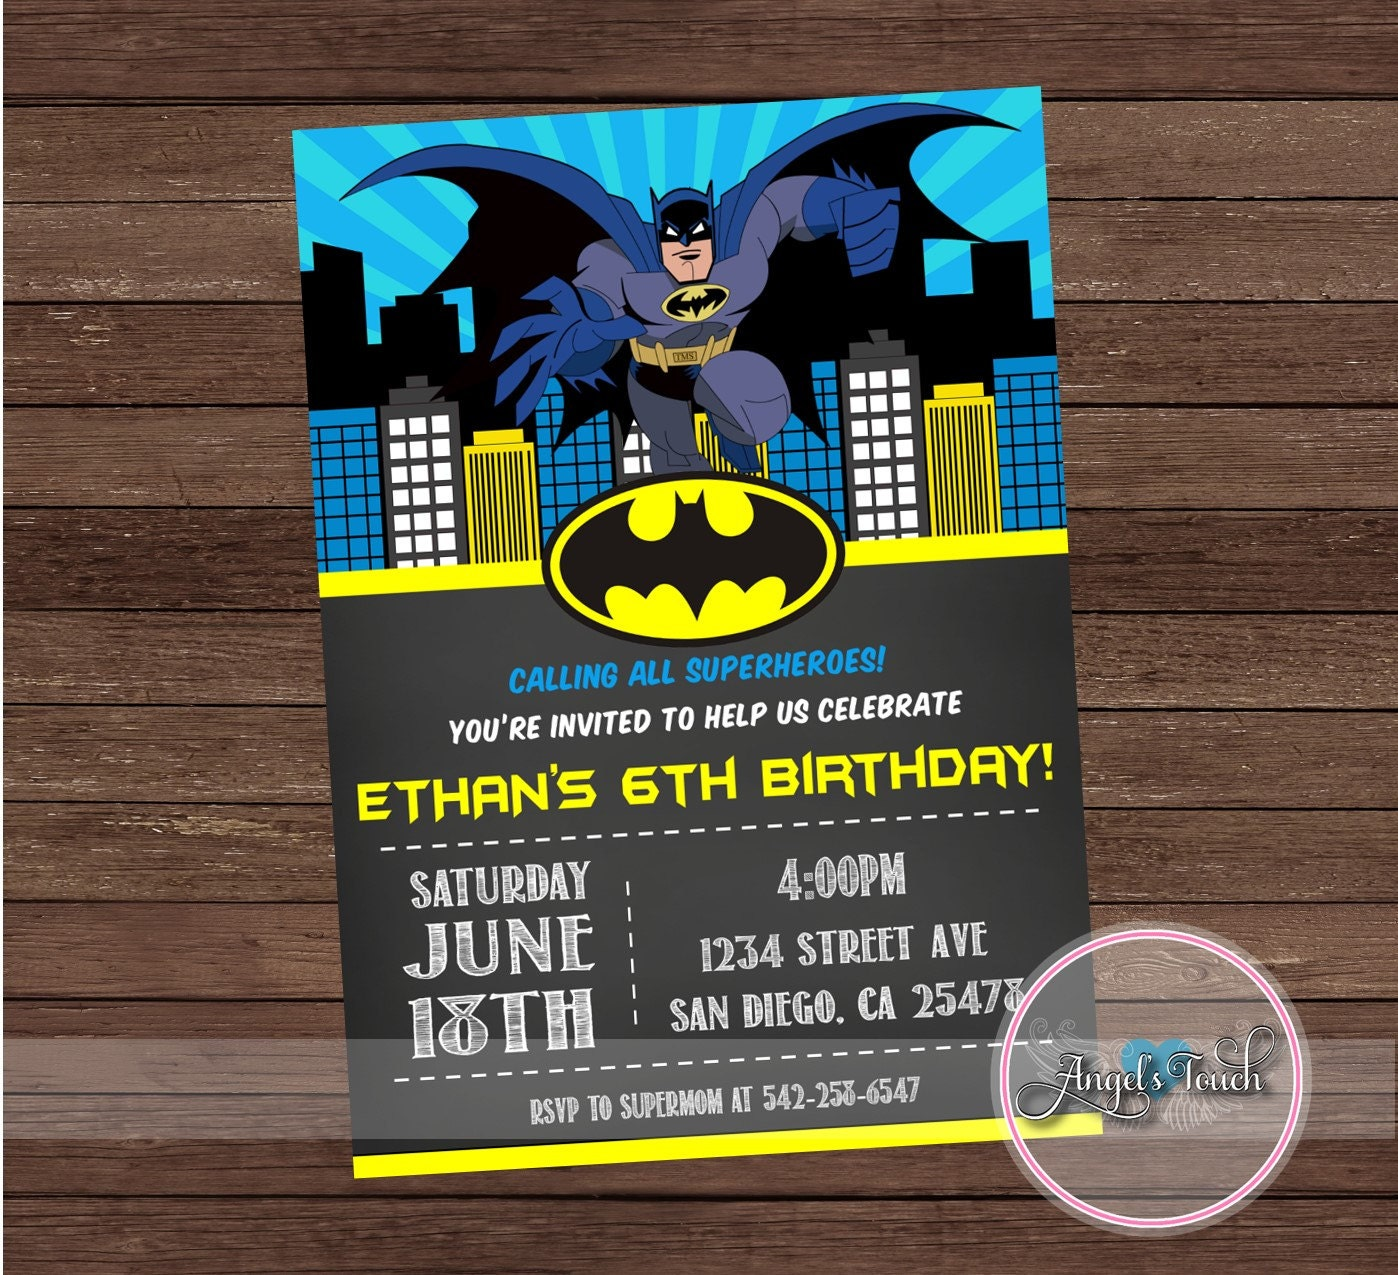 Batman party invitation batman birthday invitation batman zoom filmwisefo Choice Image